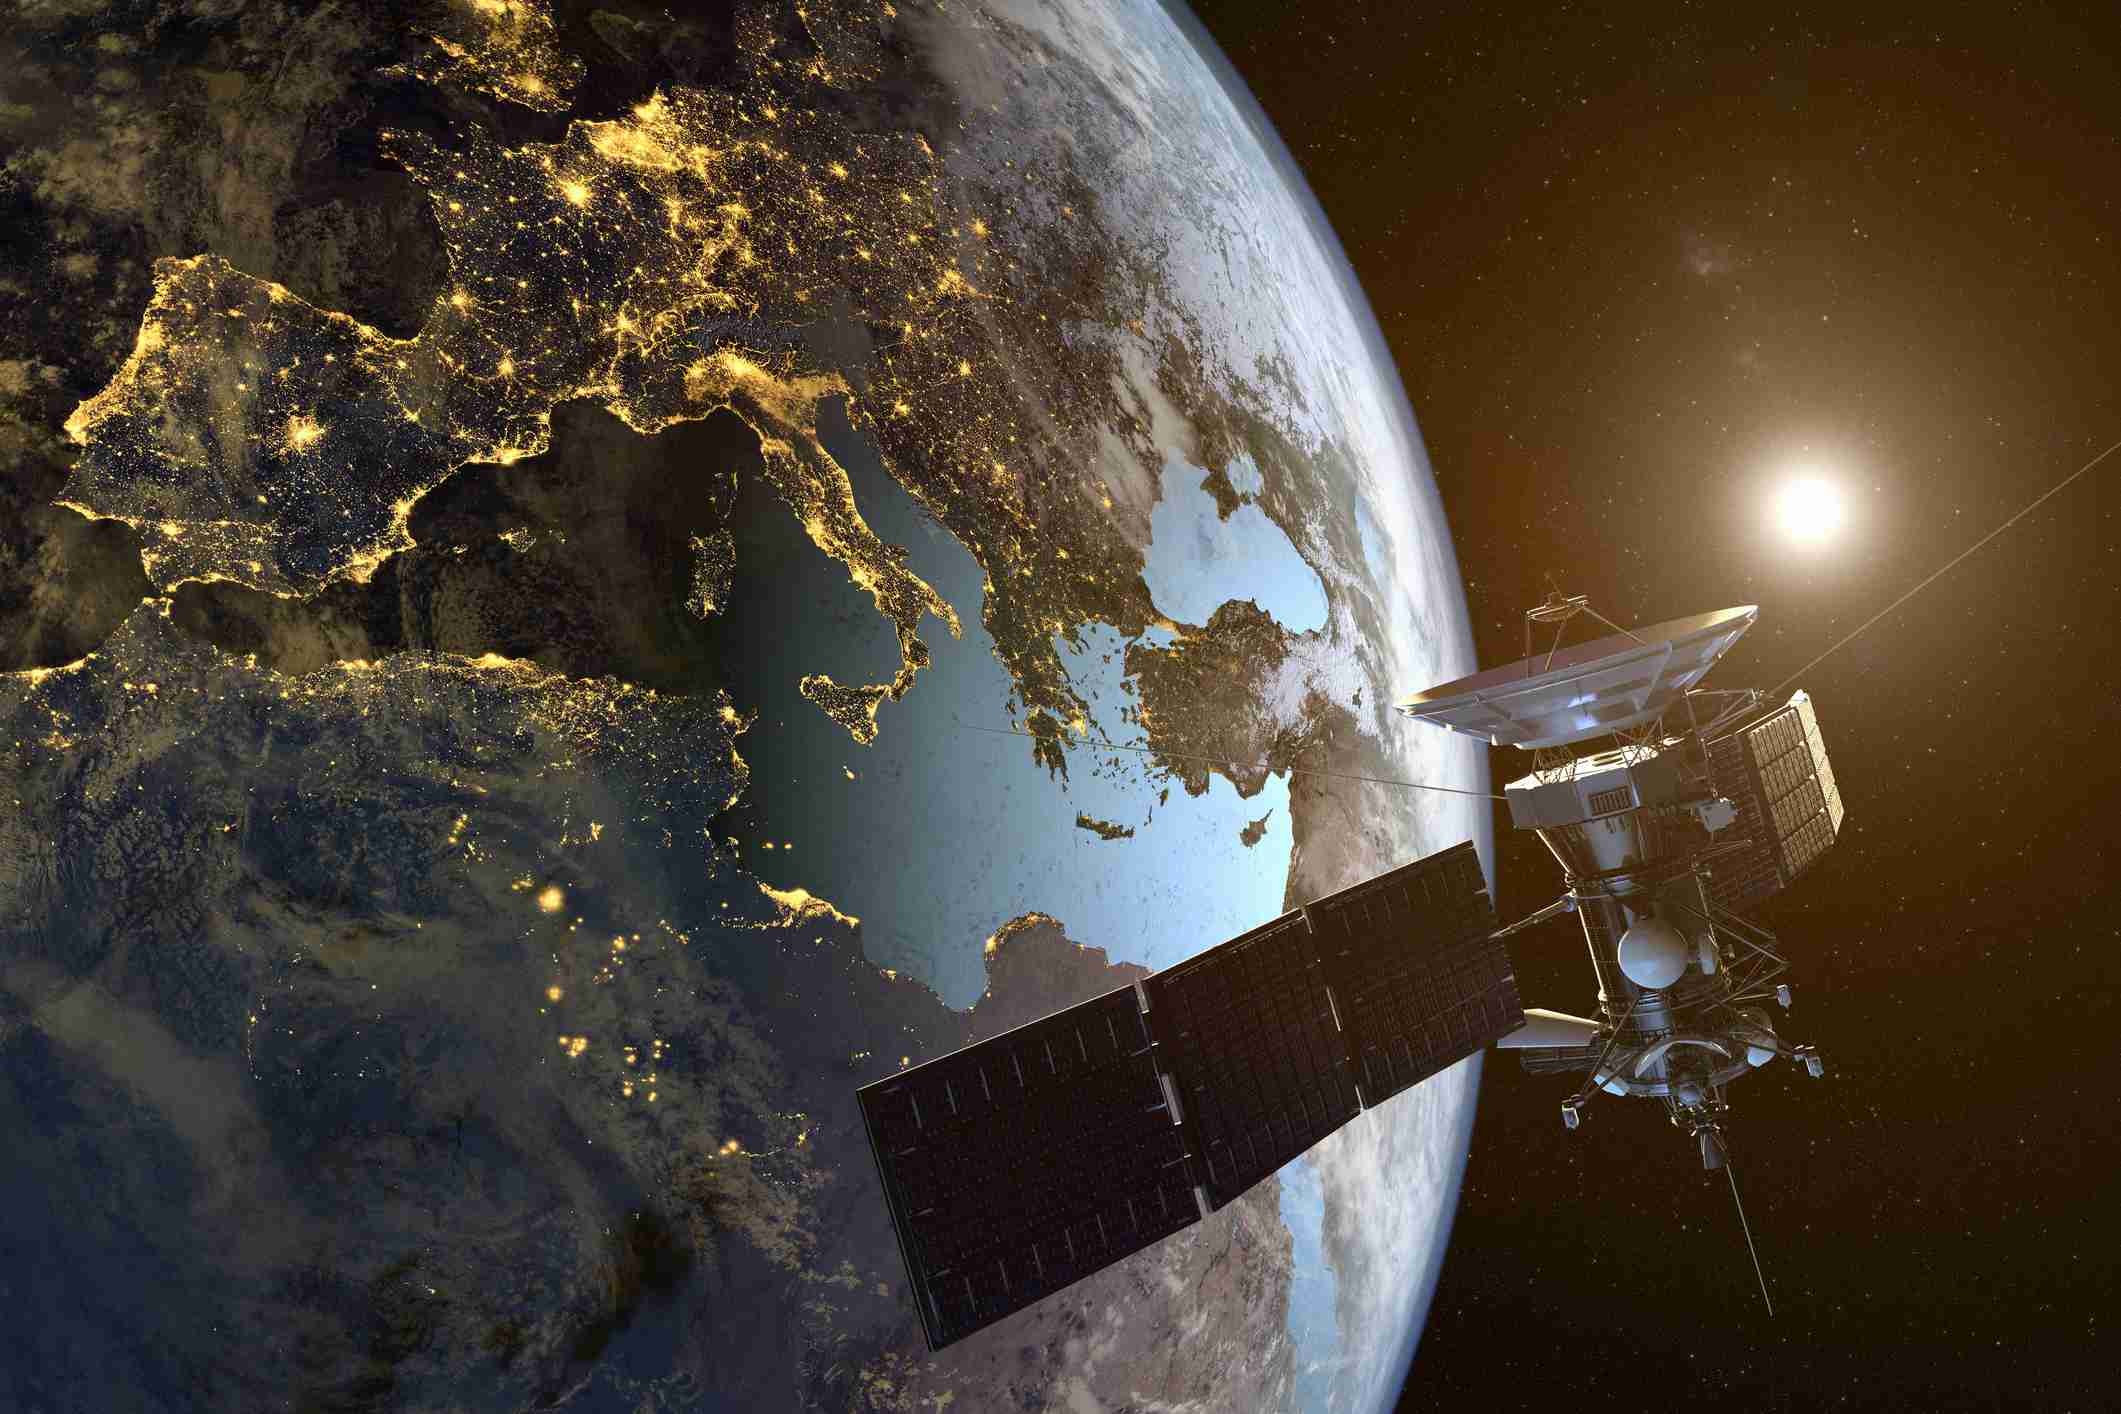 A satellite is shown in space orbiting the earth